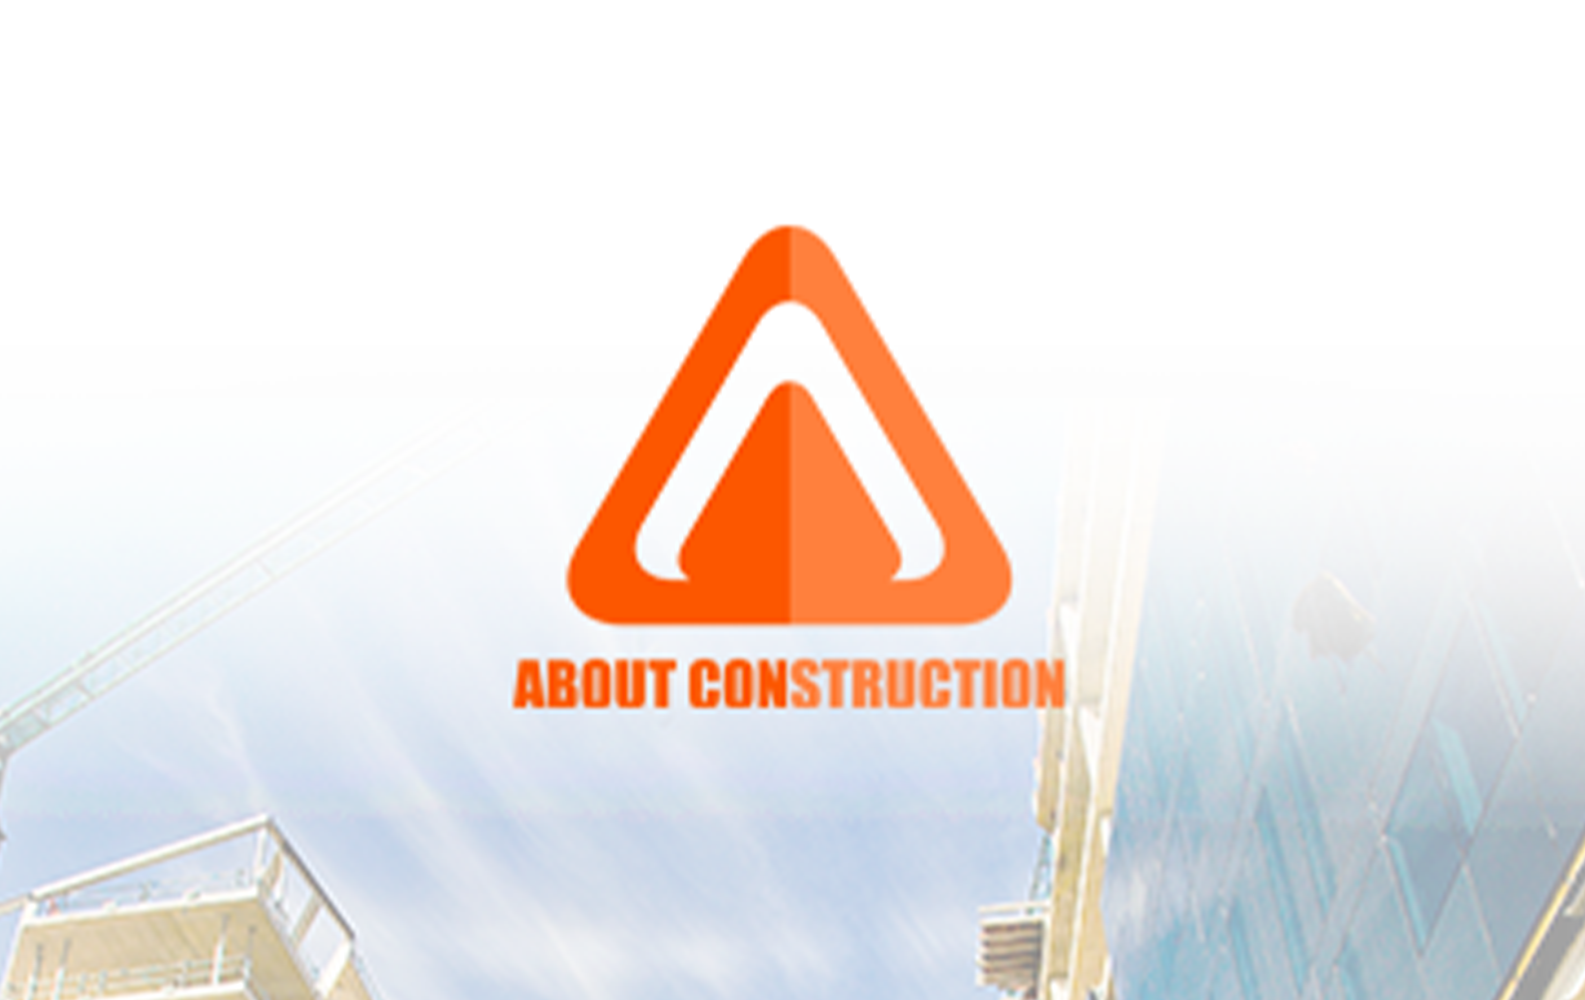 ABOUT CONSTRUCTION